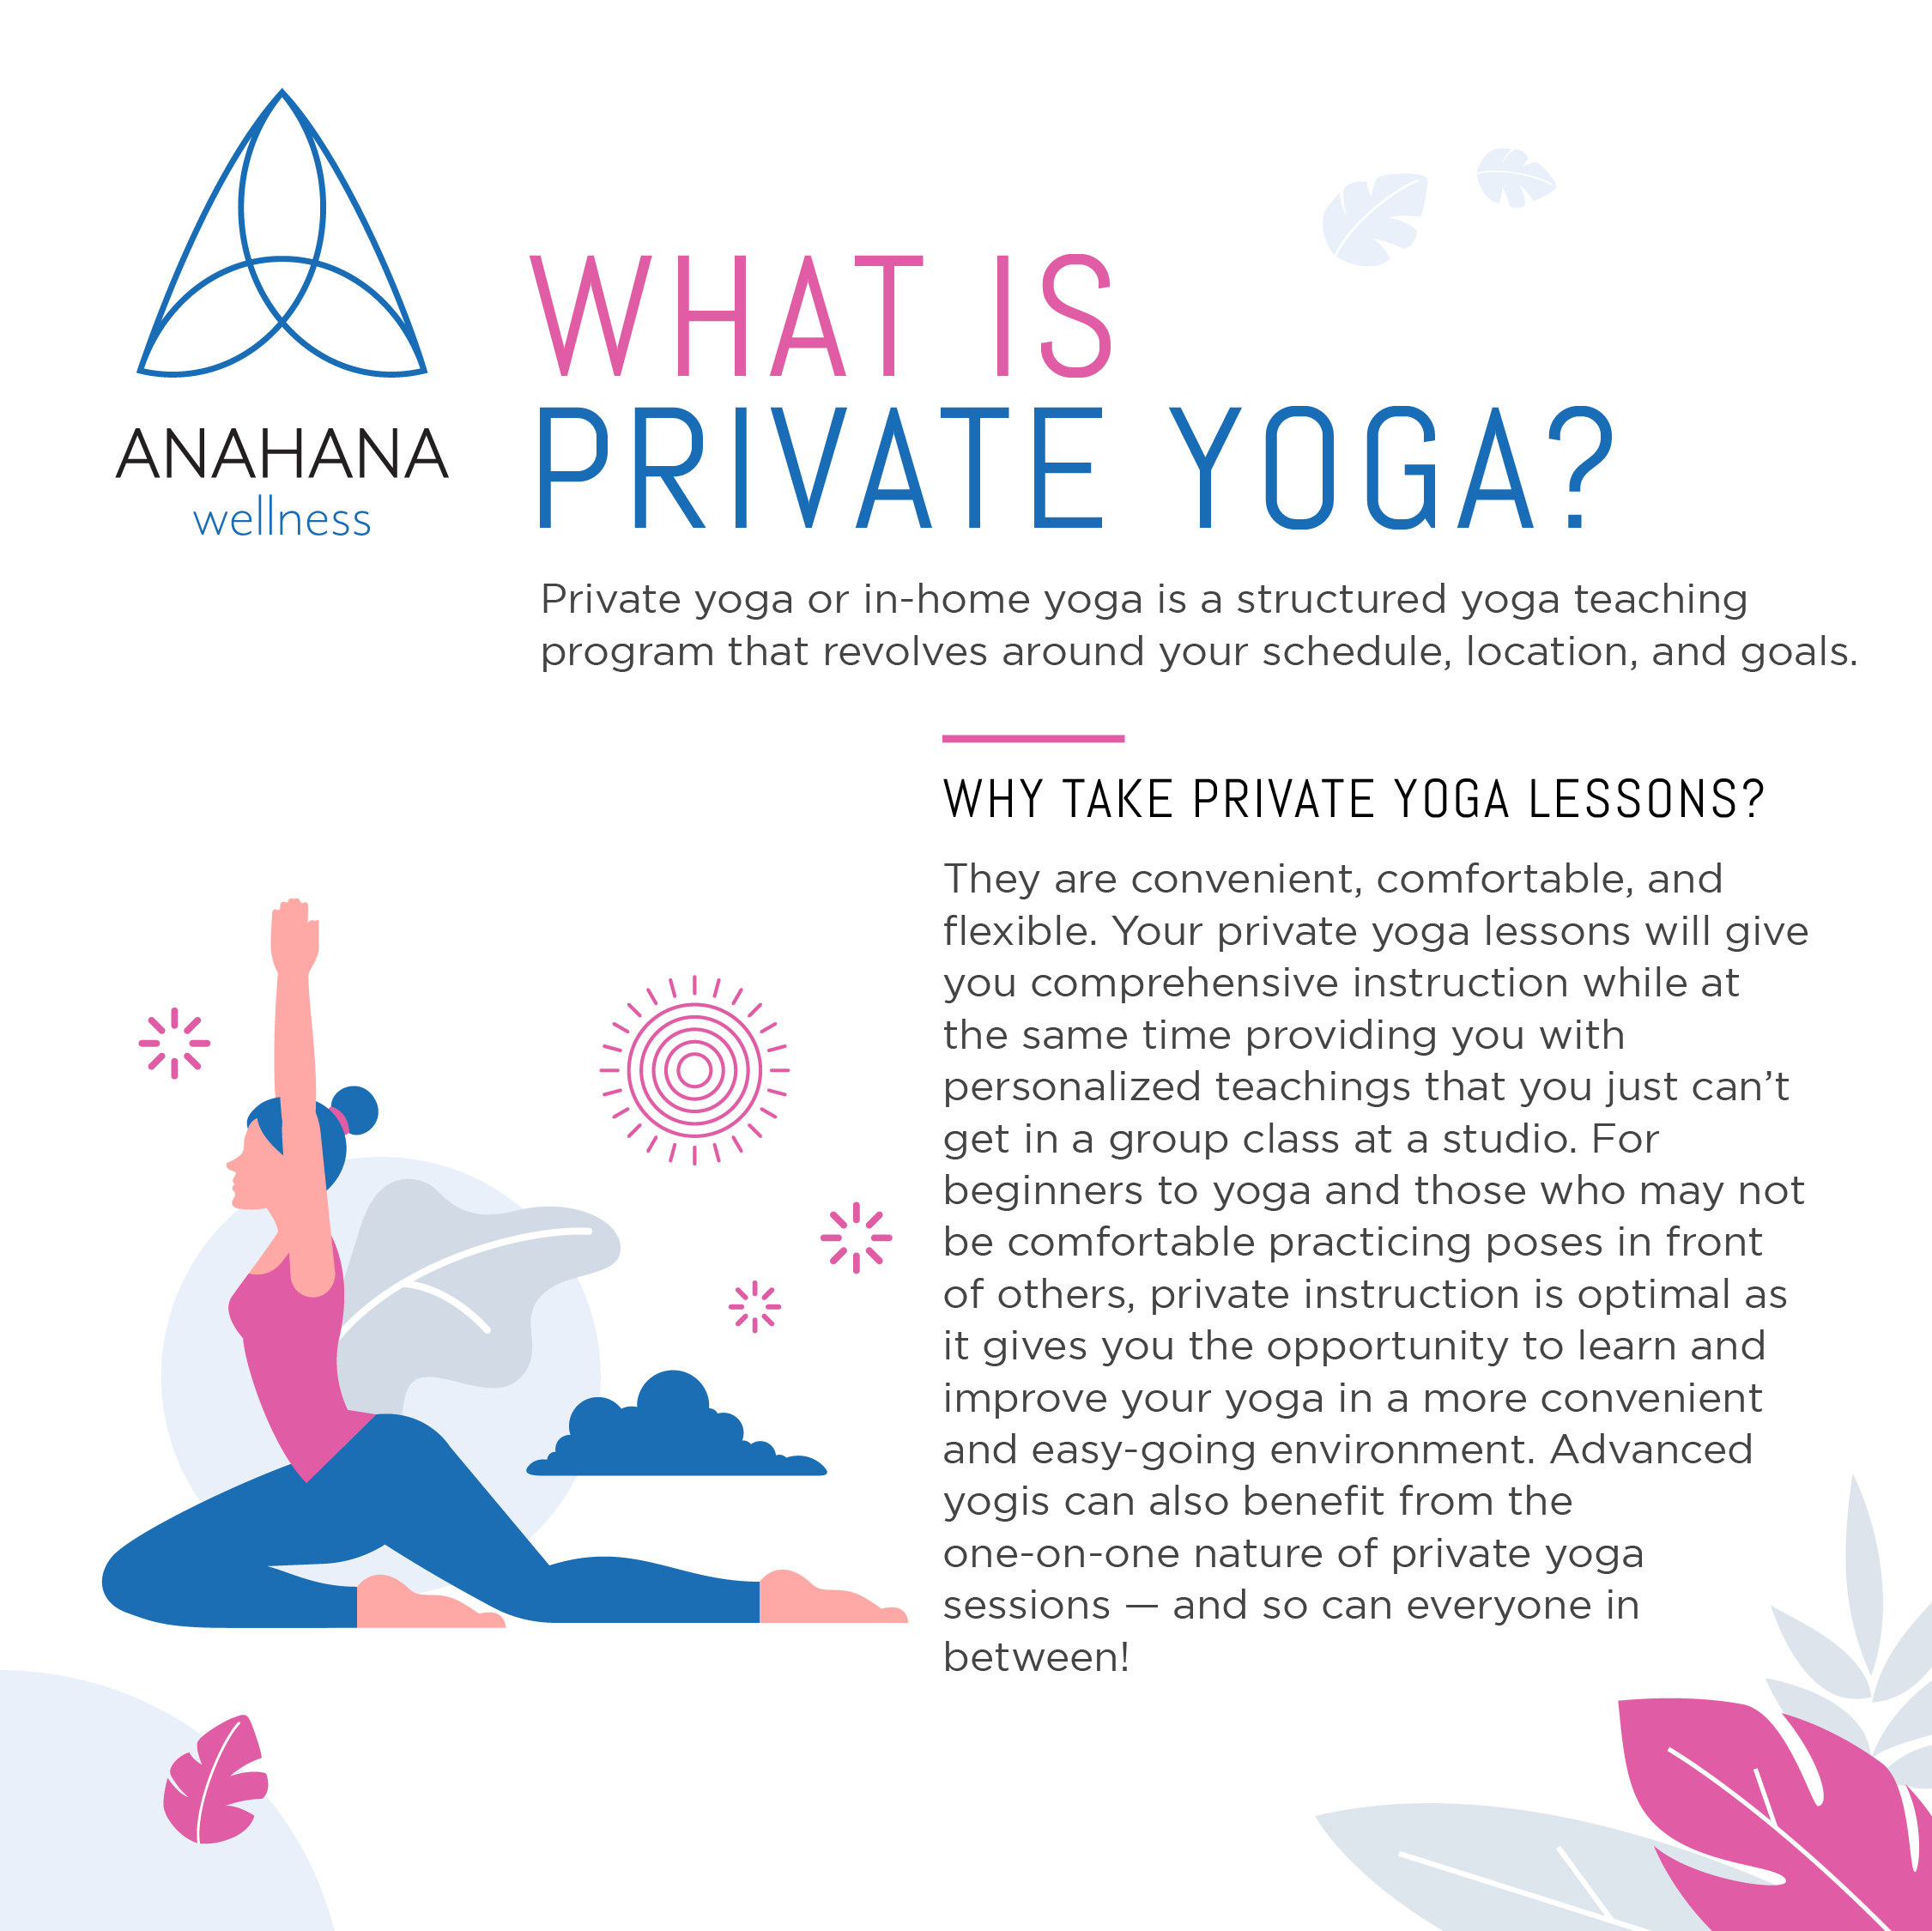 What is private yoga anahana wellness